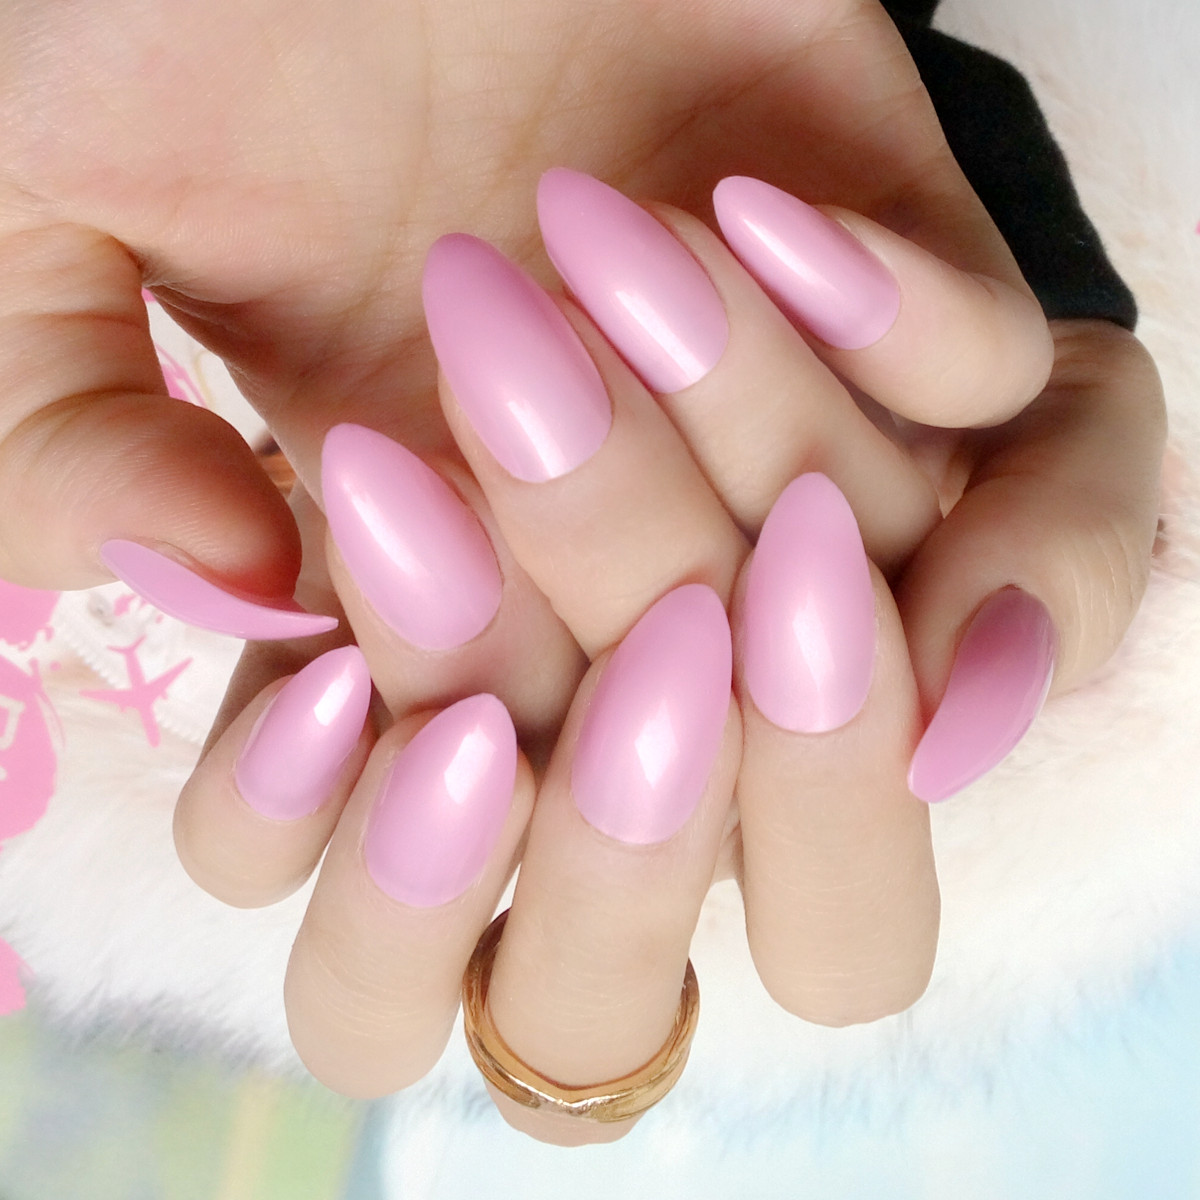 24Pcs Shiny Surface False Nails Candy Pearl Pink Acrylic Fake Nail ...